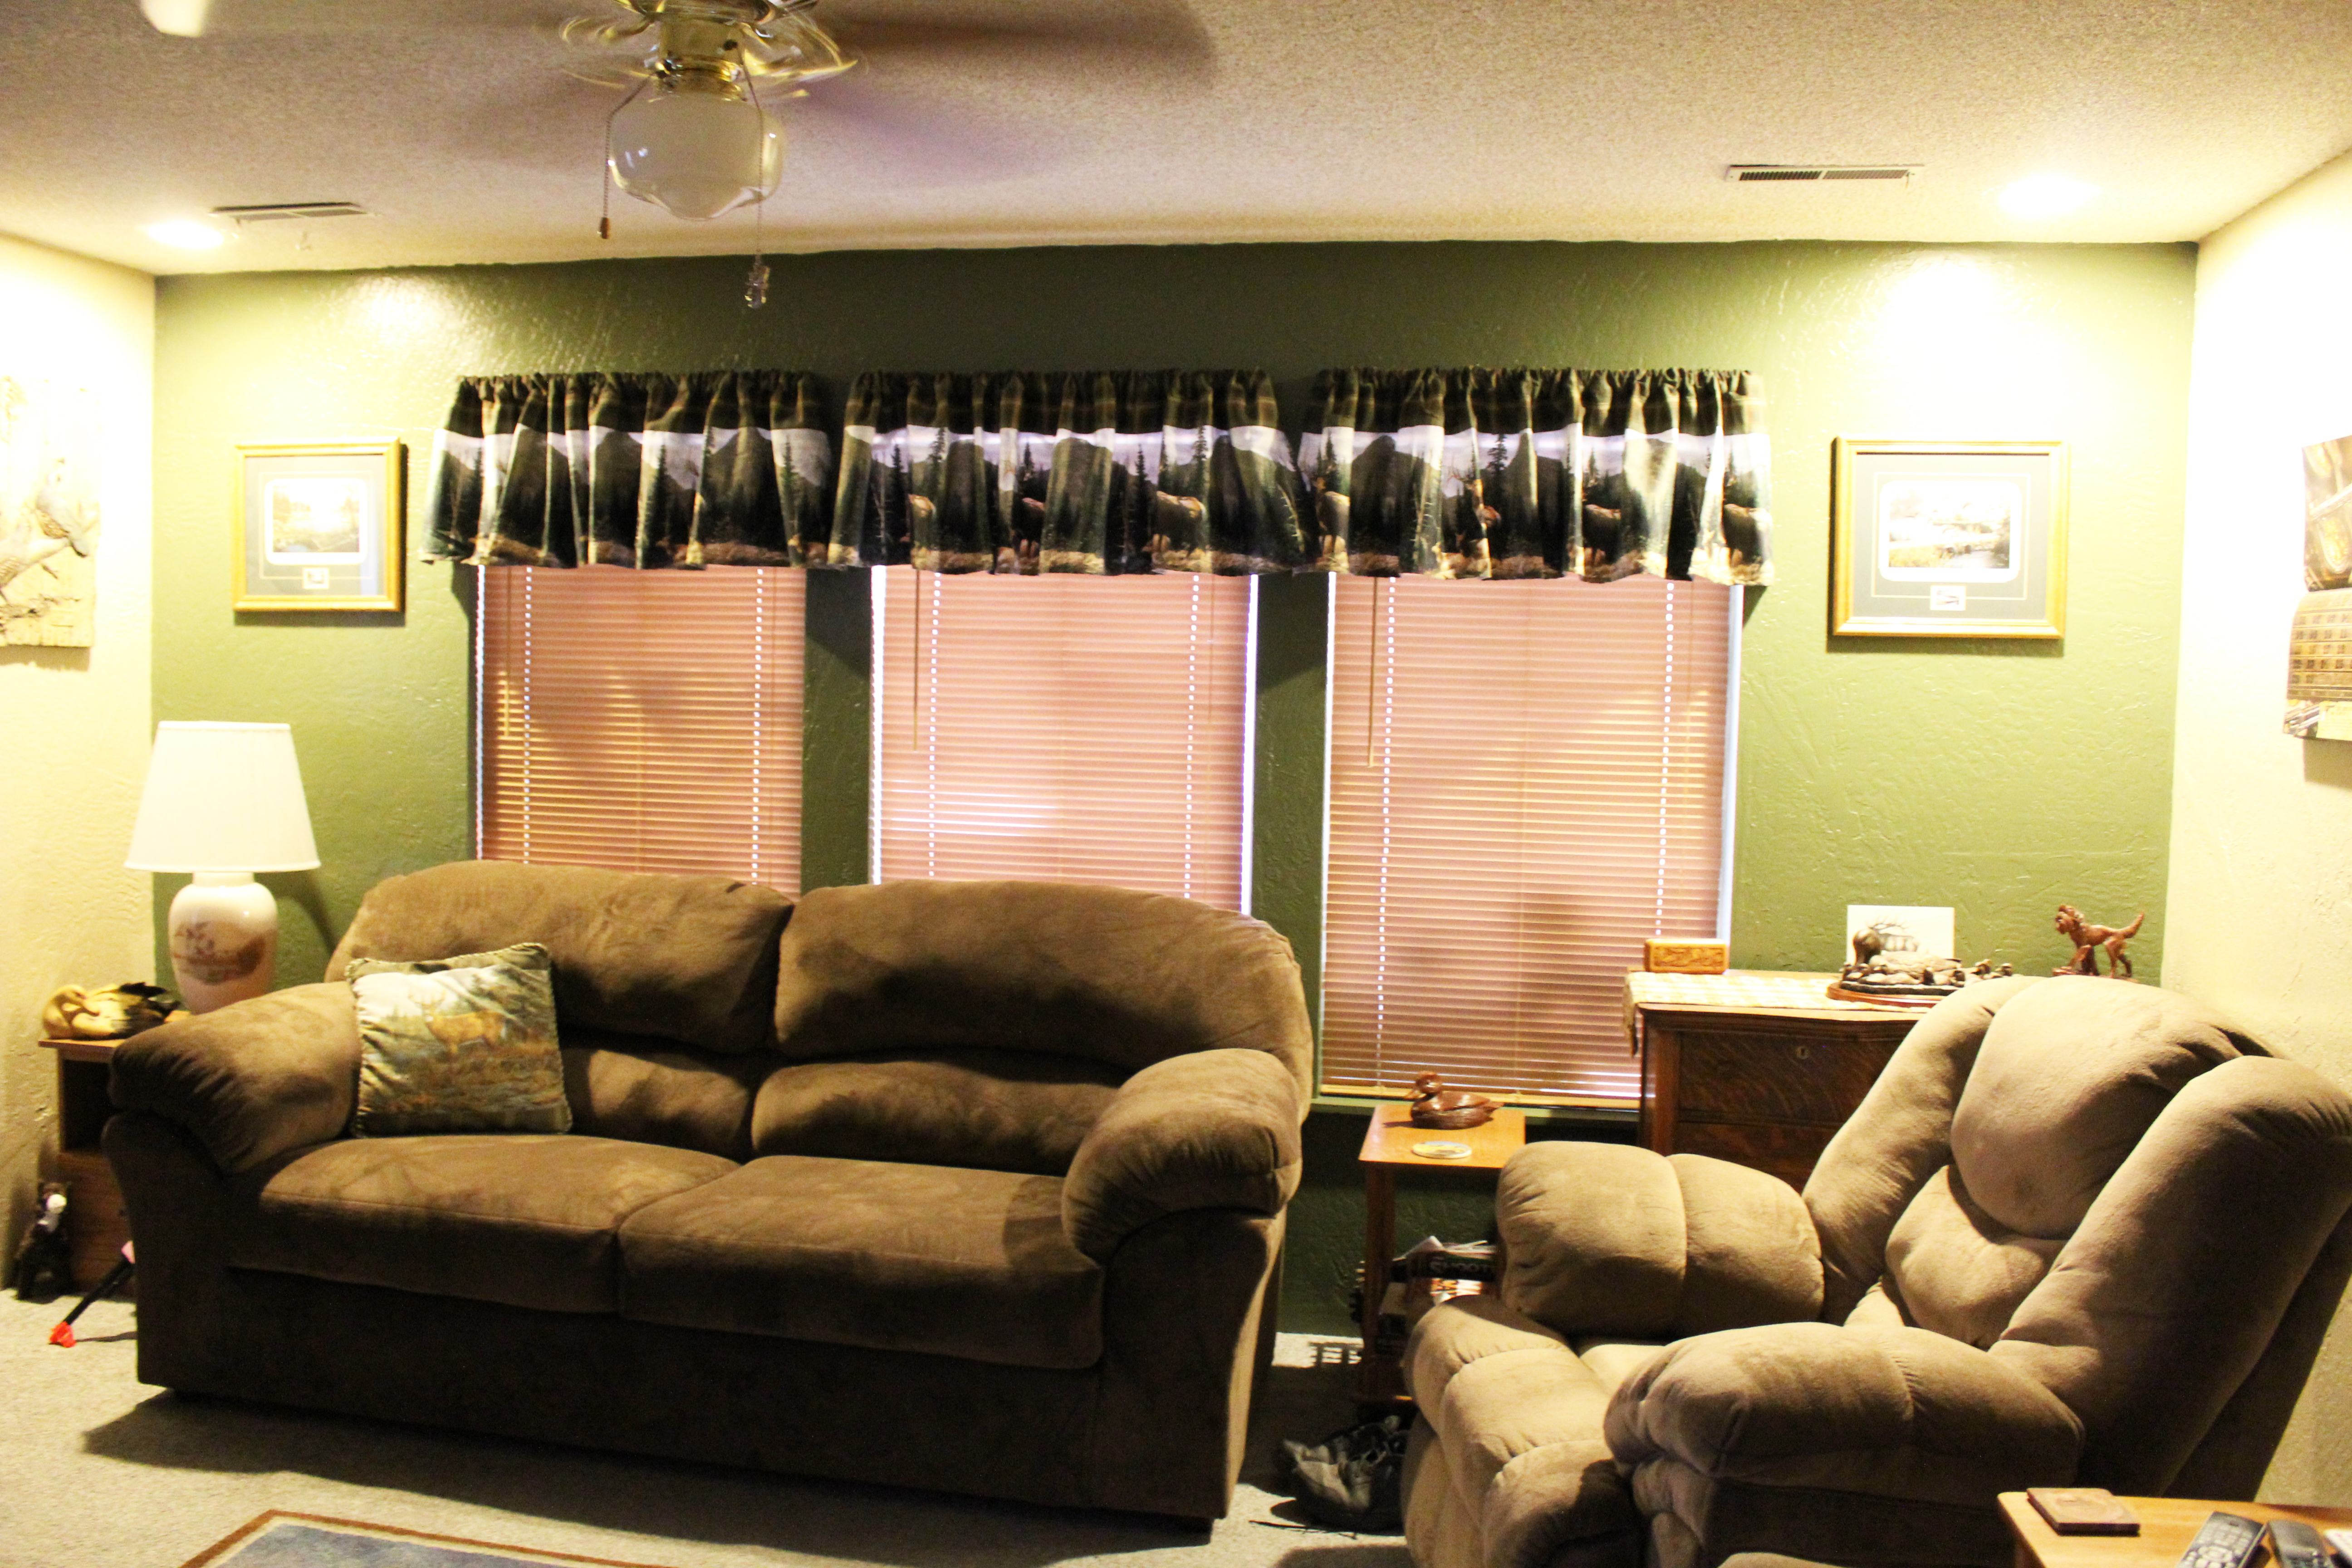 Man Cave Furniture For Sale : The man cave savvy entertaining